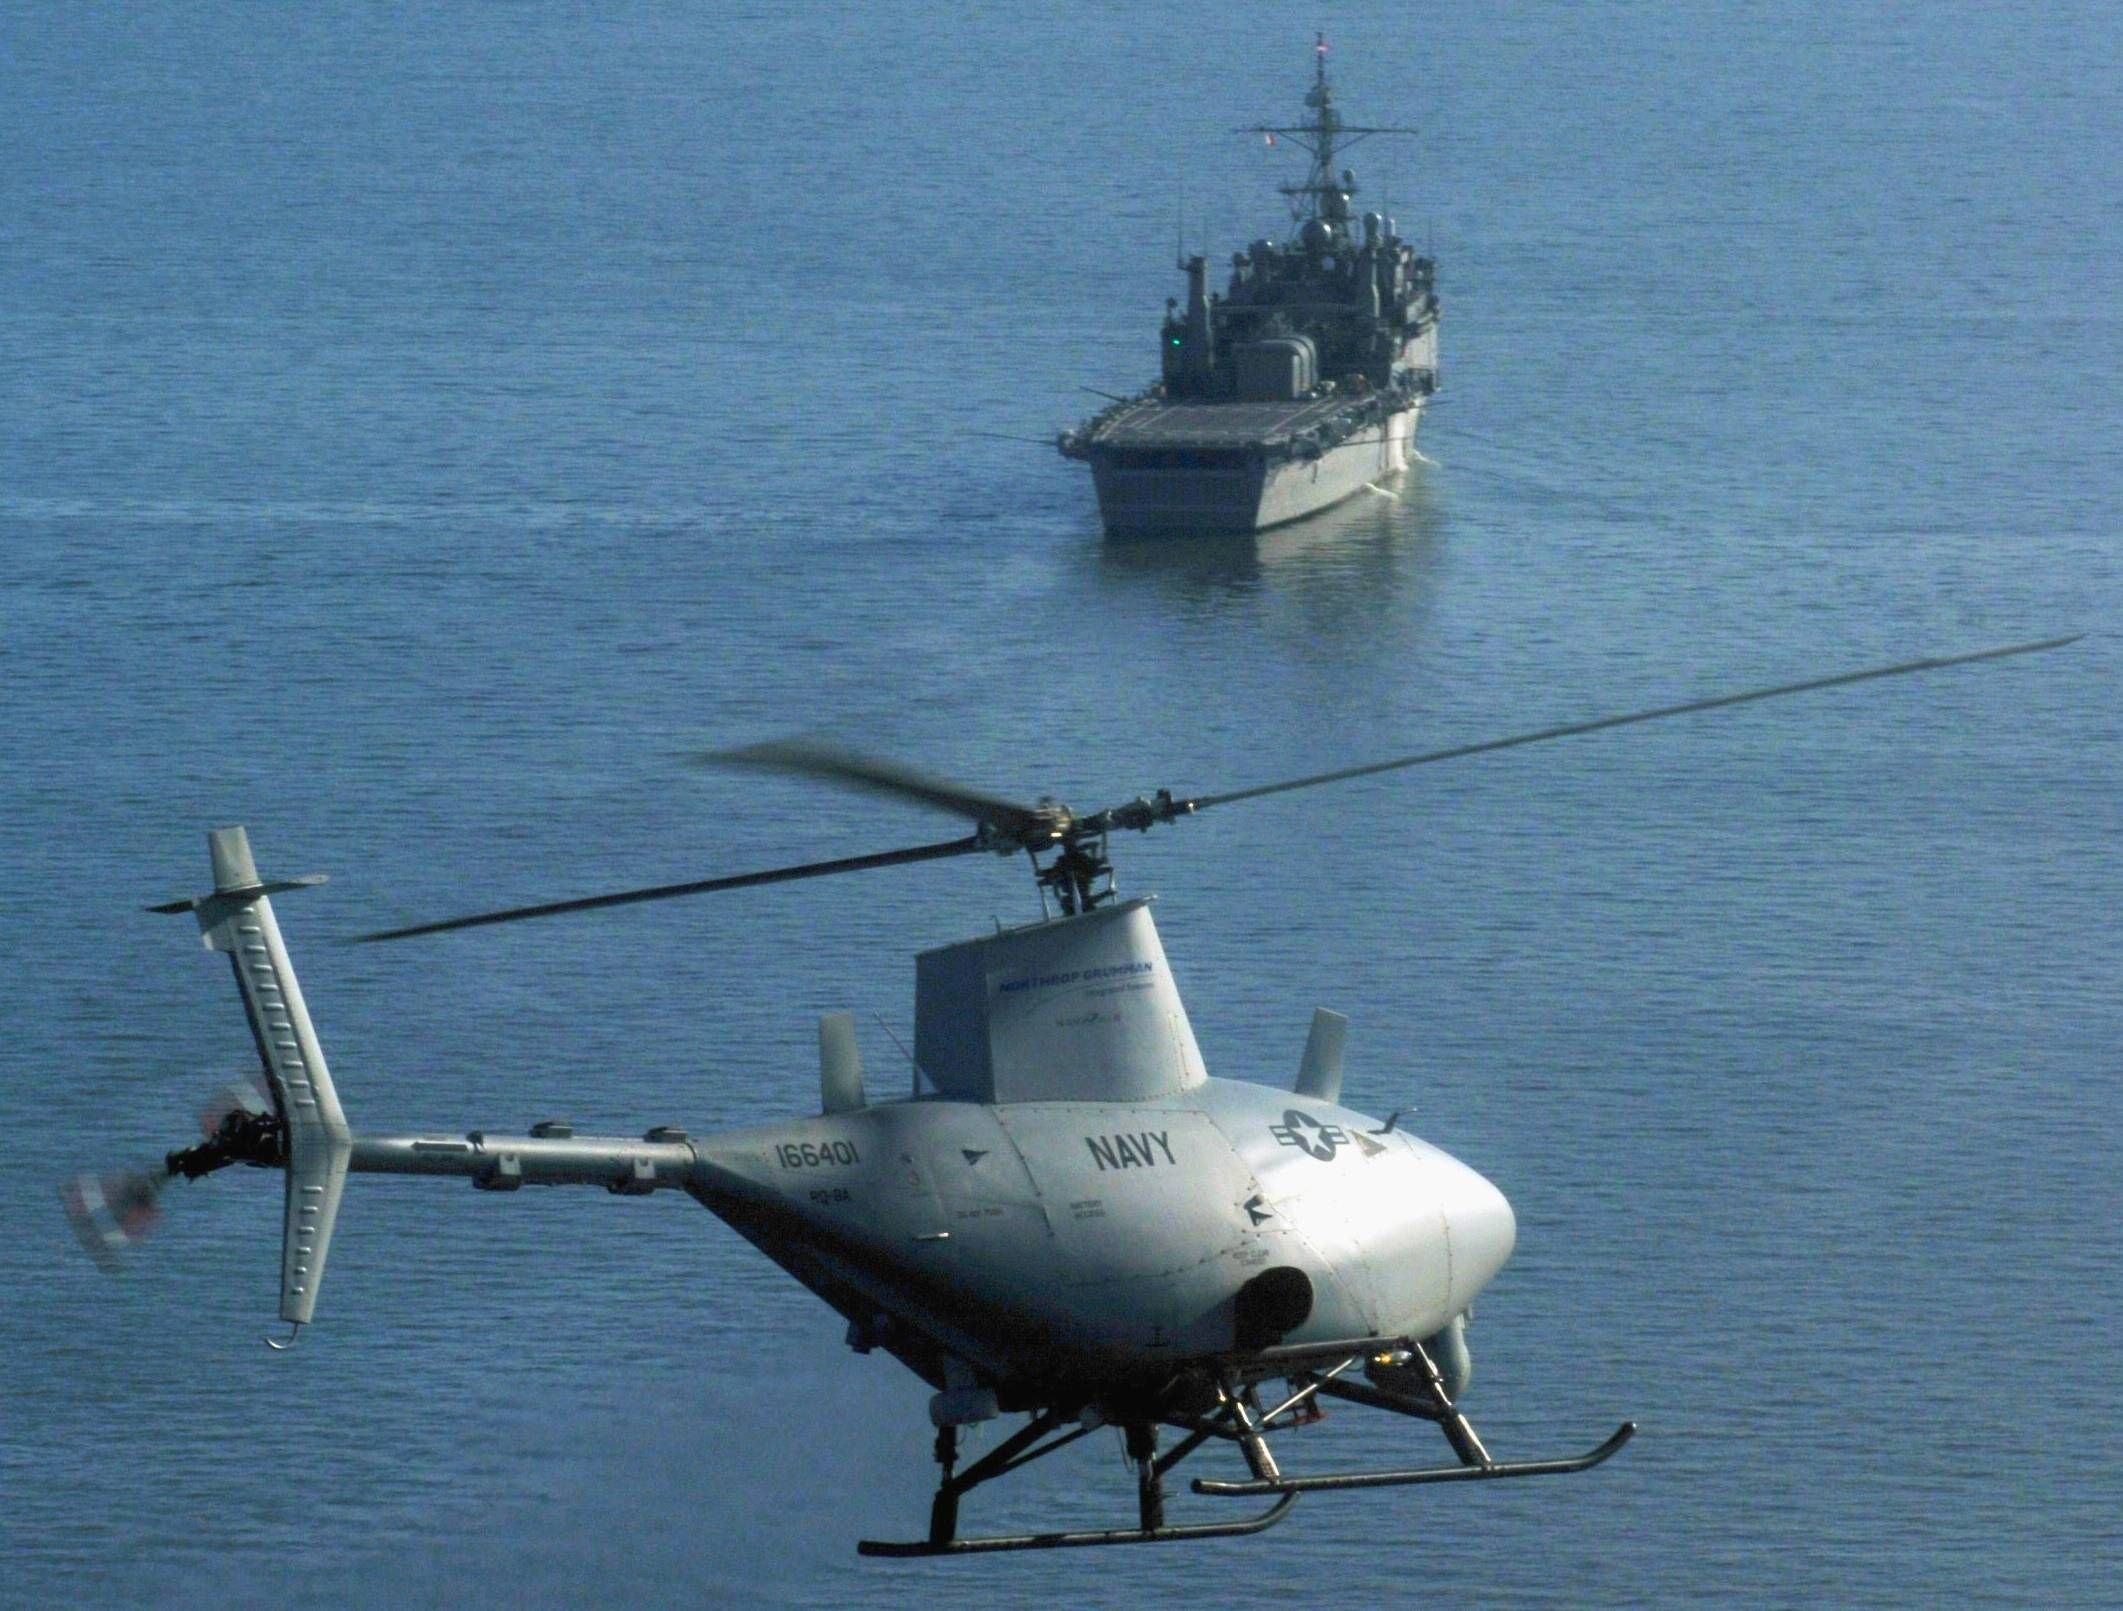 Fire Scout unmanned helicopter (RQ-8A) about to make its first ever at-sea landing, on the USS Nashville (LPD 13) in 2006.